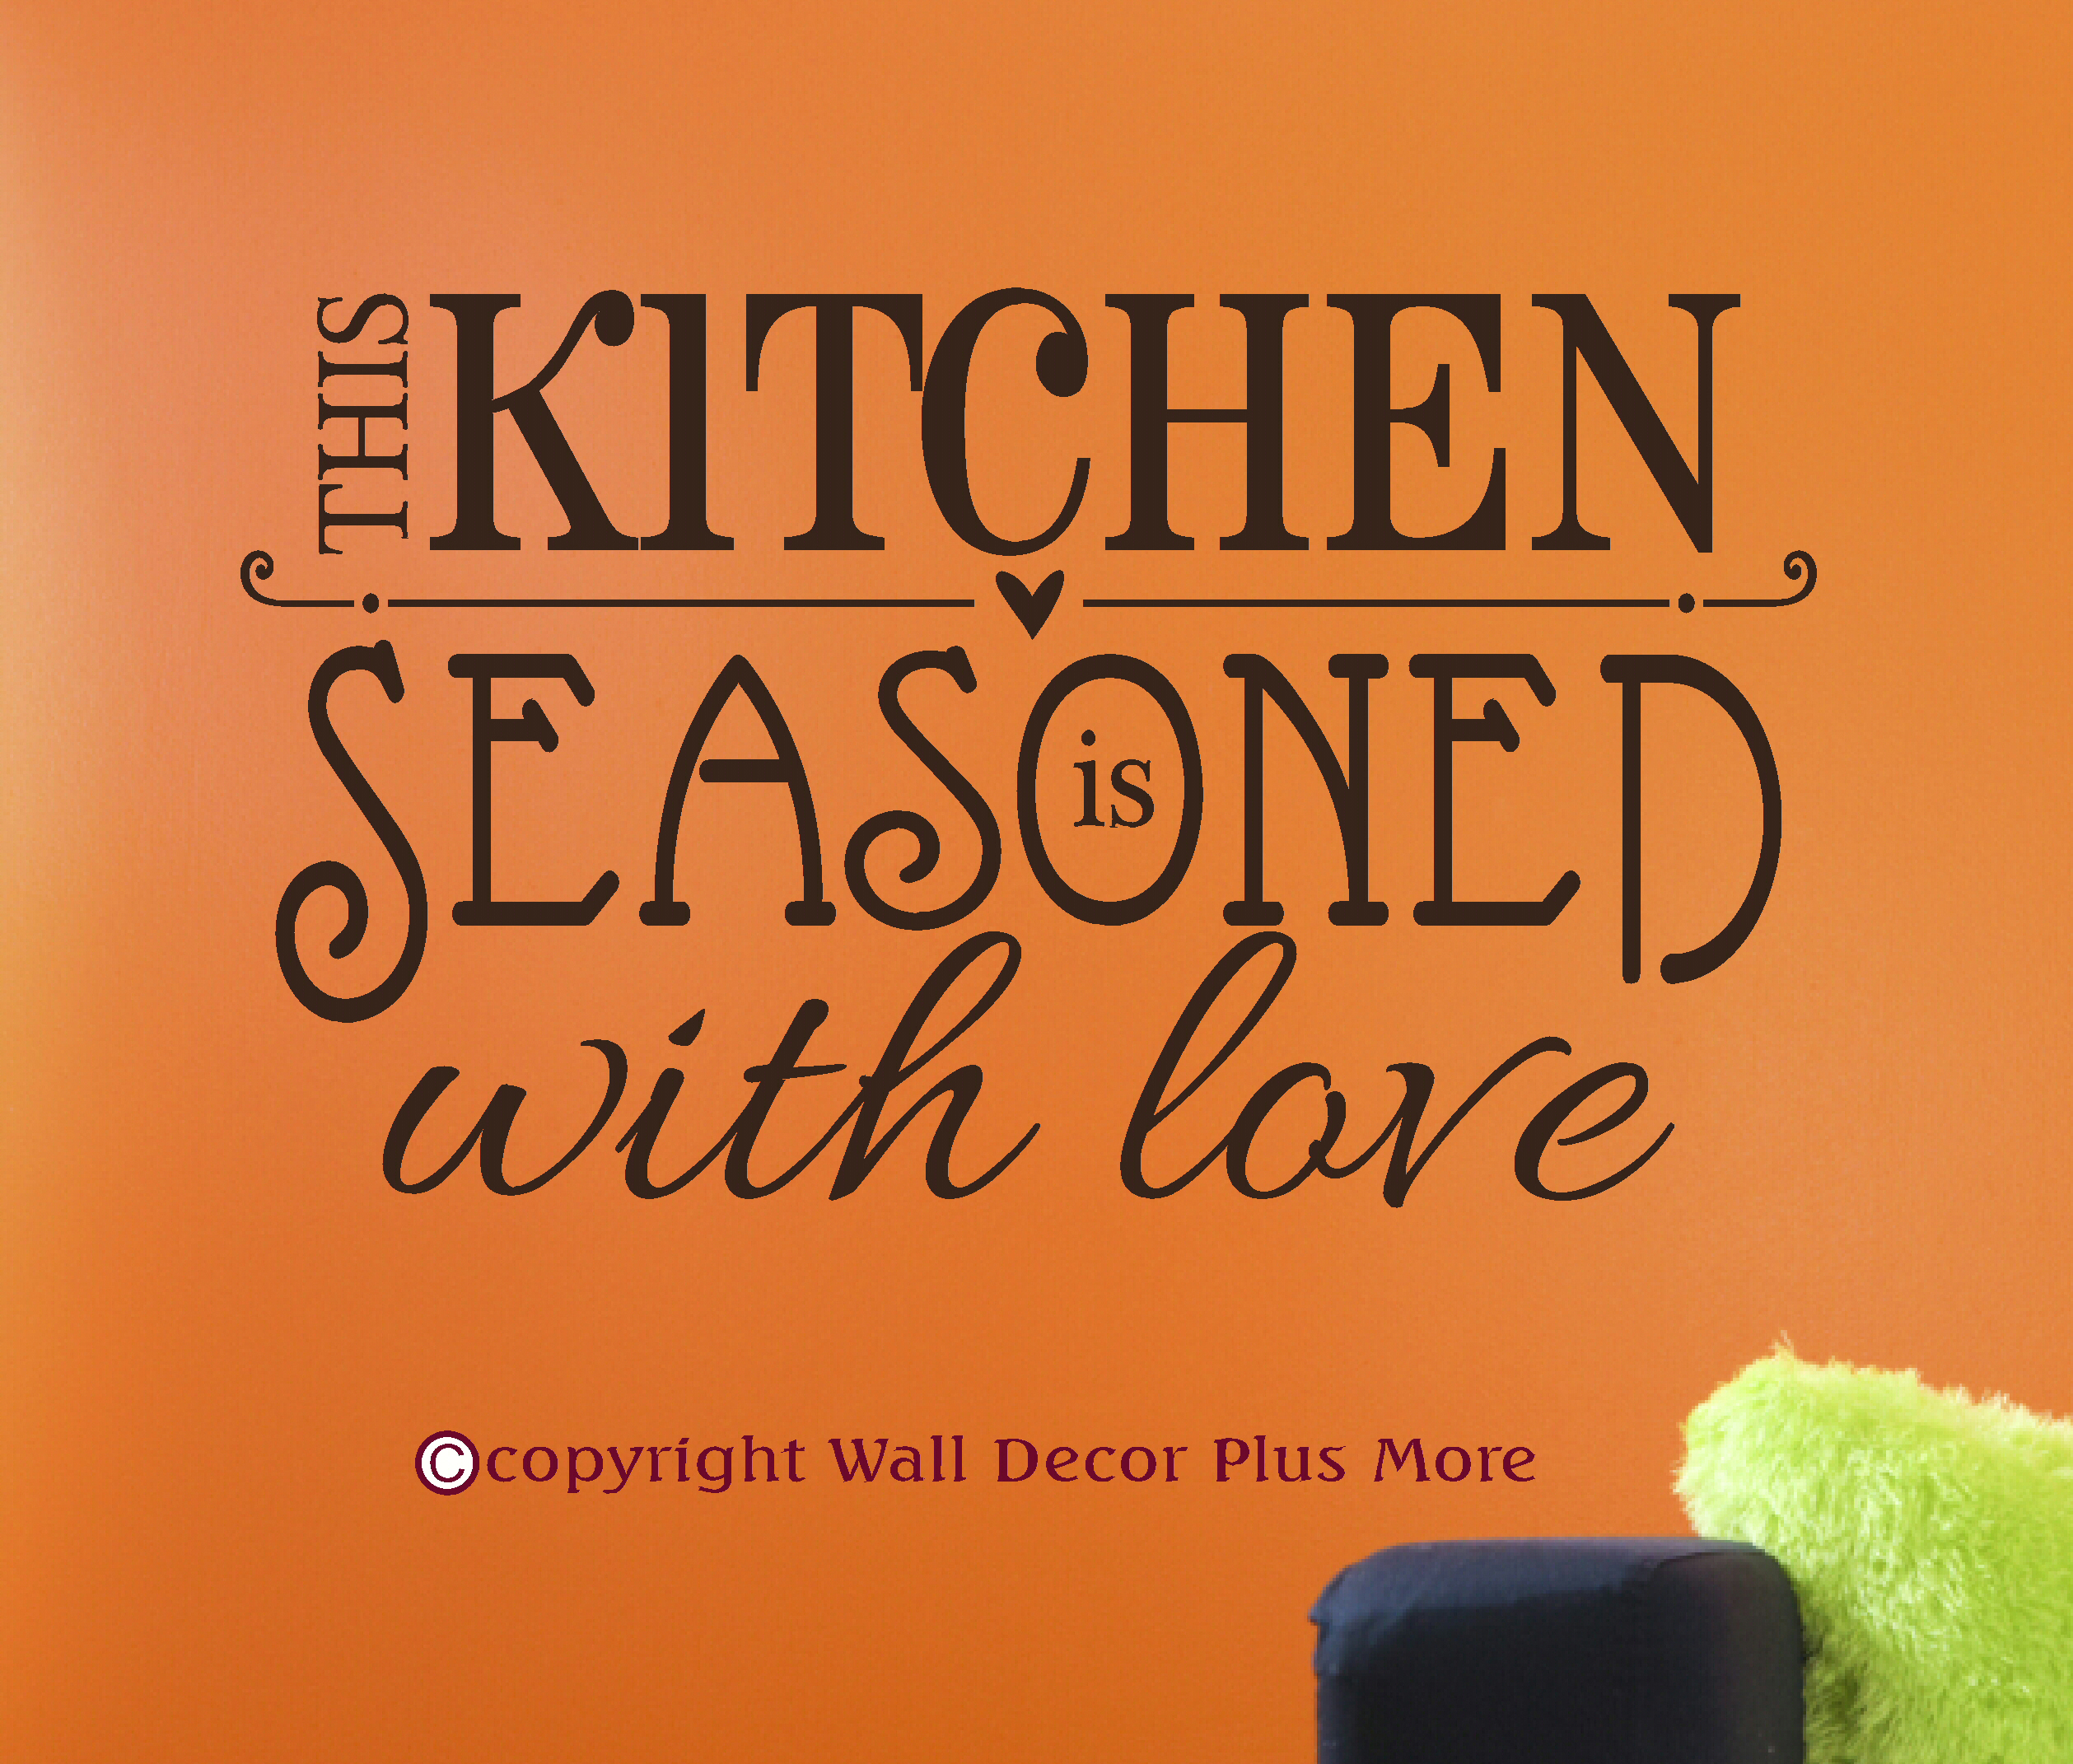 Kitchen Wall Art Decal - PR003-G